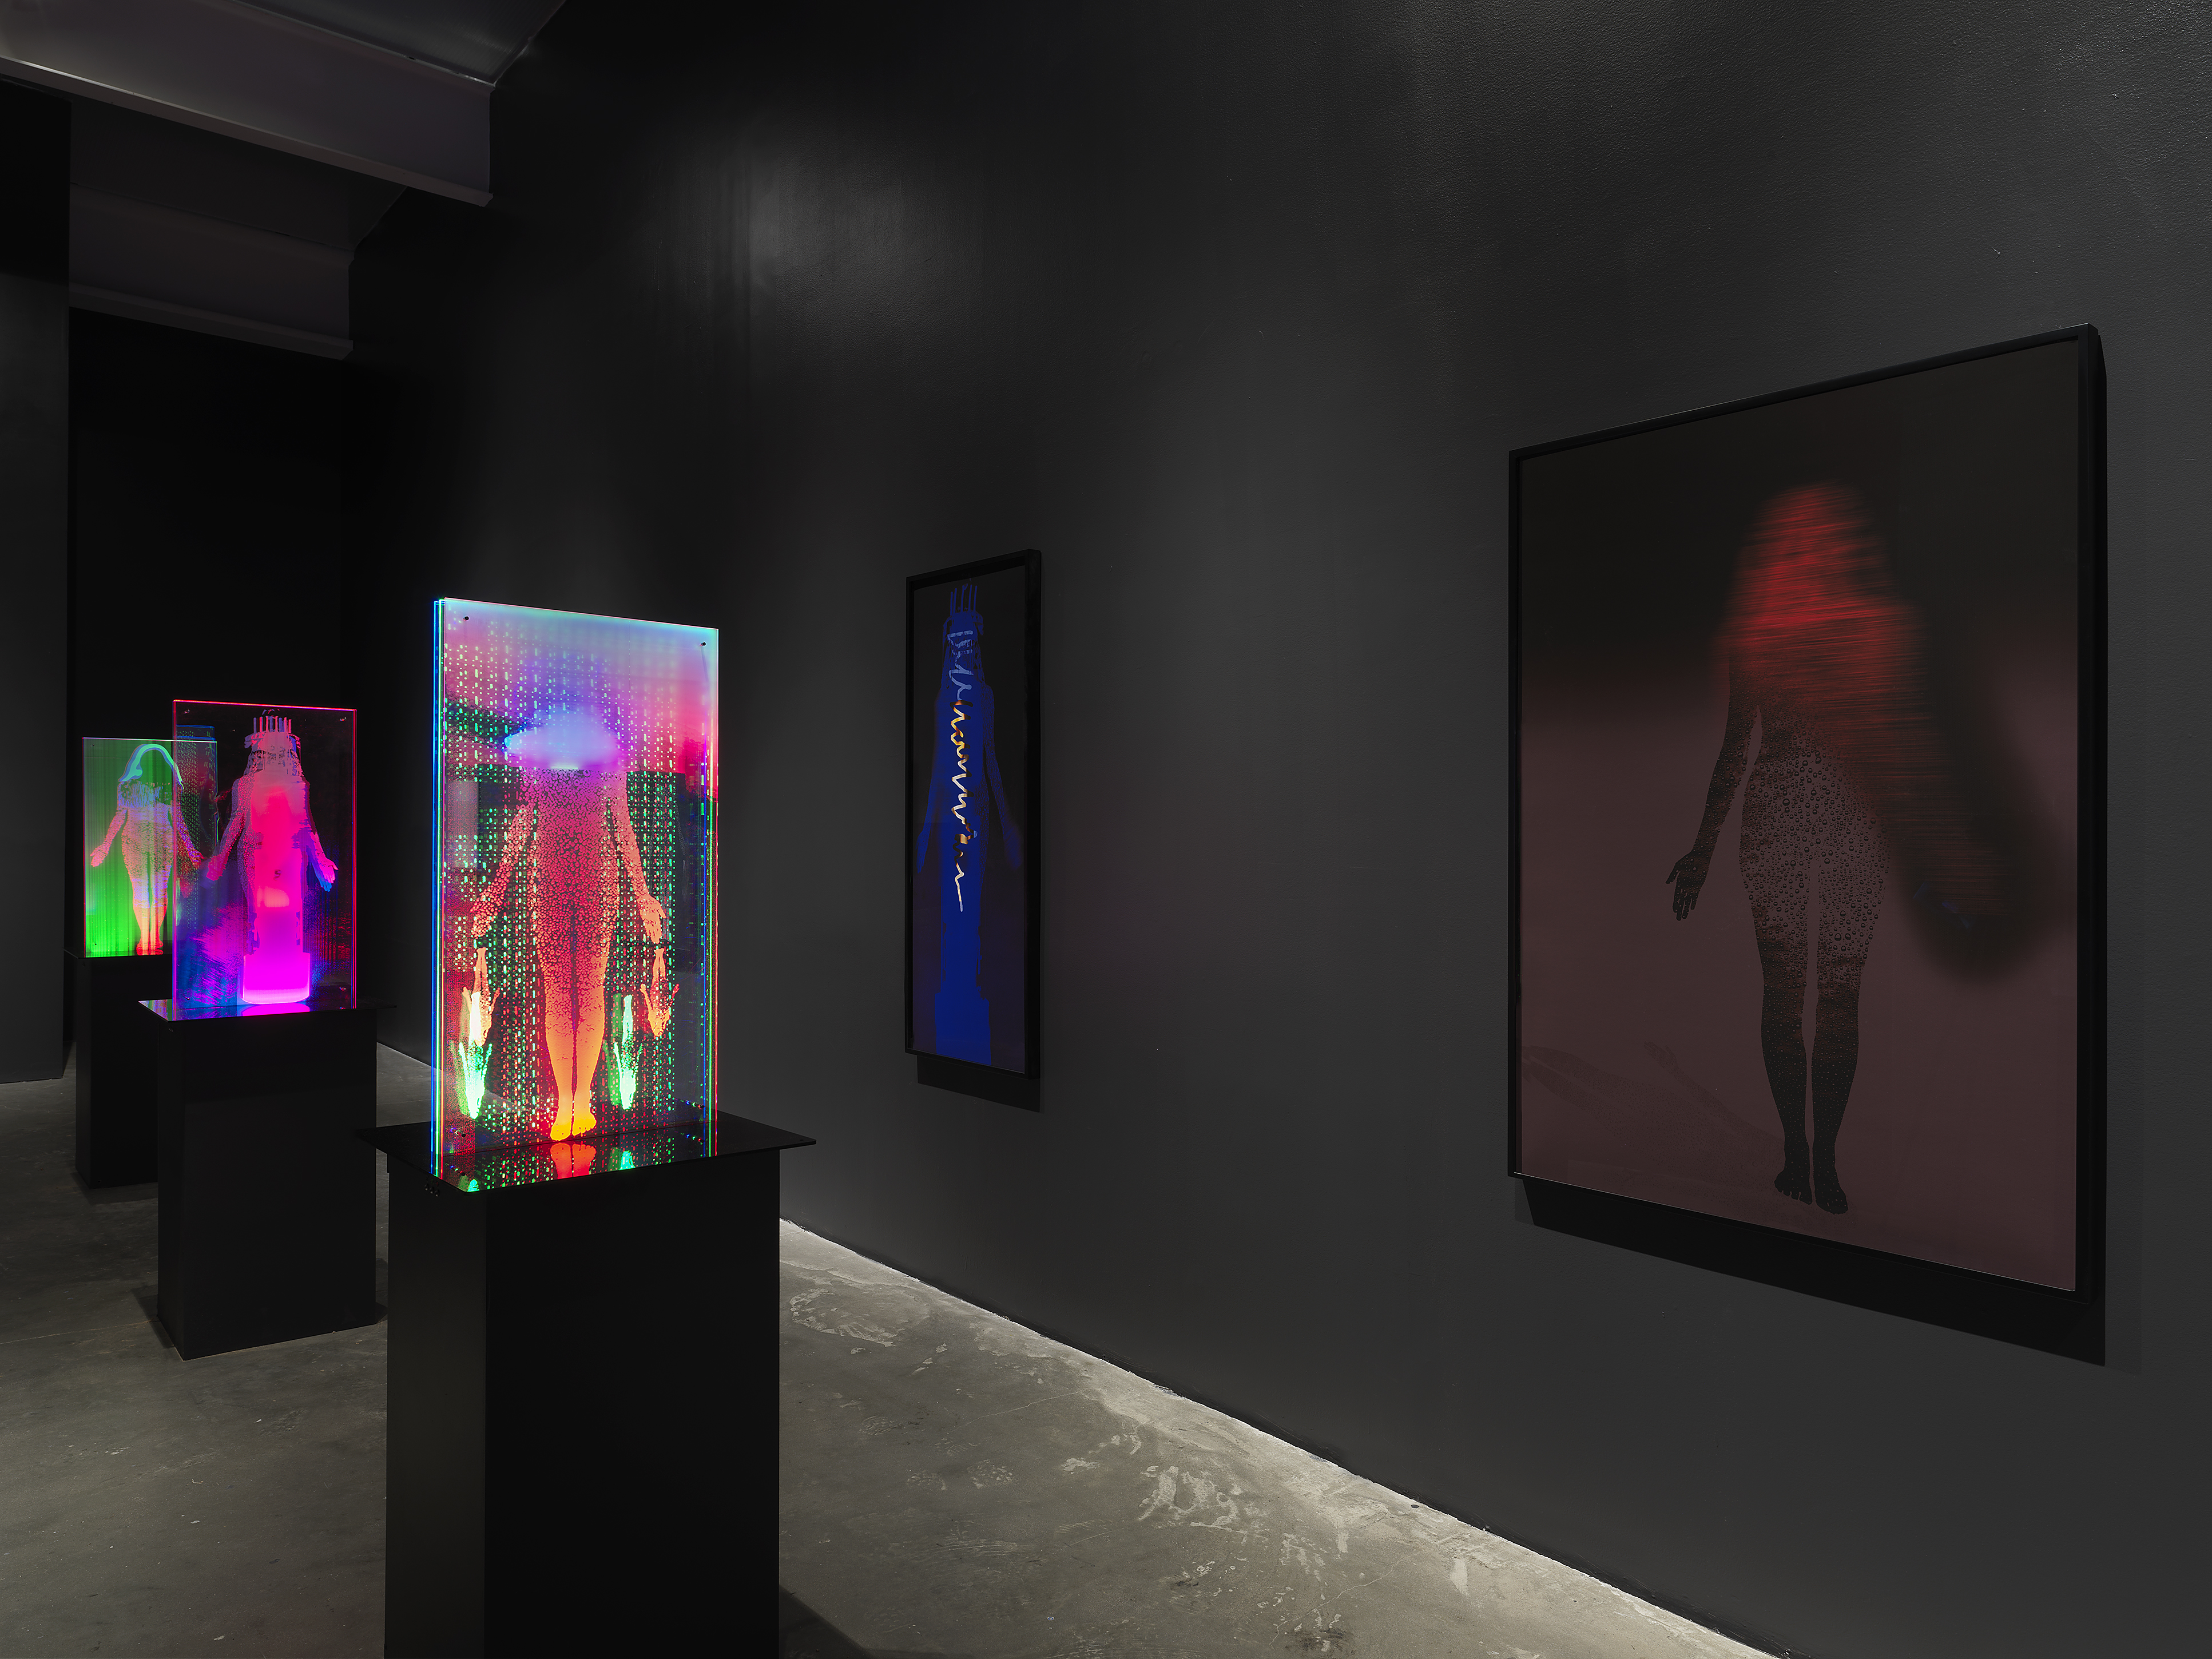 """Installation view of """"Lynn Hershman Leeson: Twisted,"""" at the New Museum, 2021. Courtesy of the New Museum, New York. Photo: Dario Lasagni"""